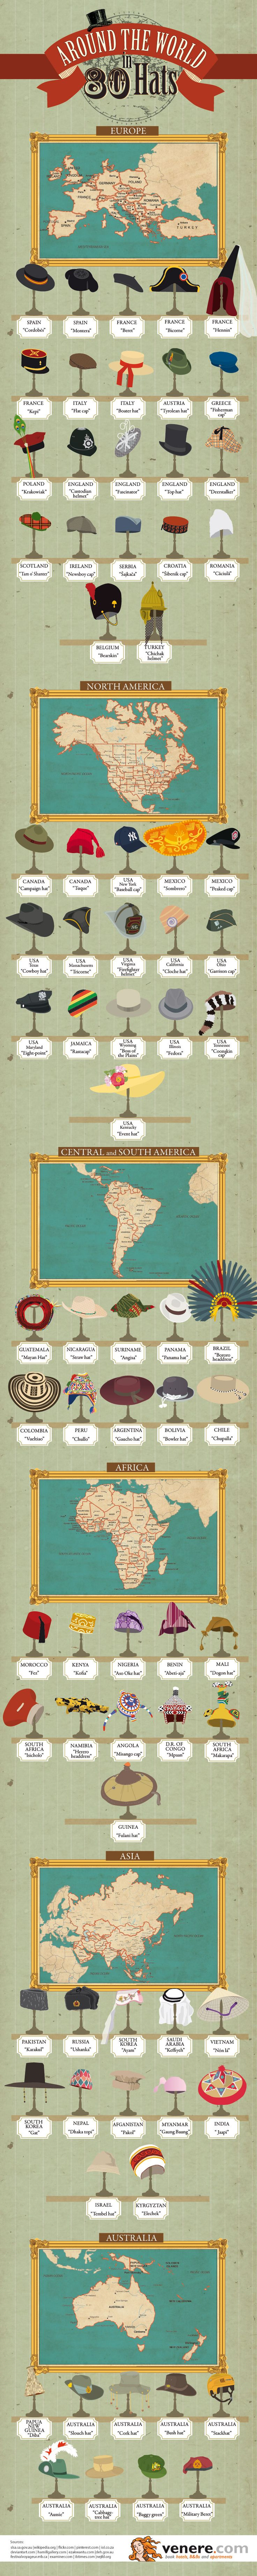 Around the world in 80 hats [infographic] | #travel @MatadorNetwork